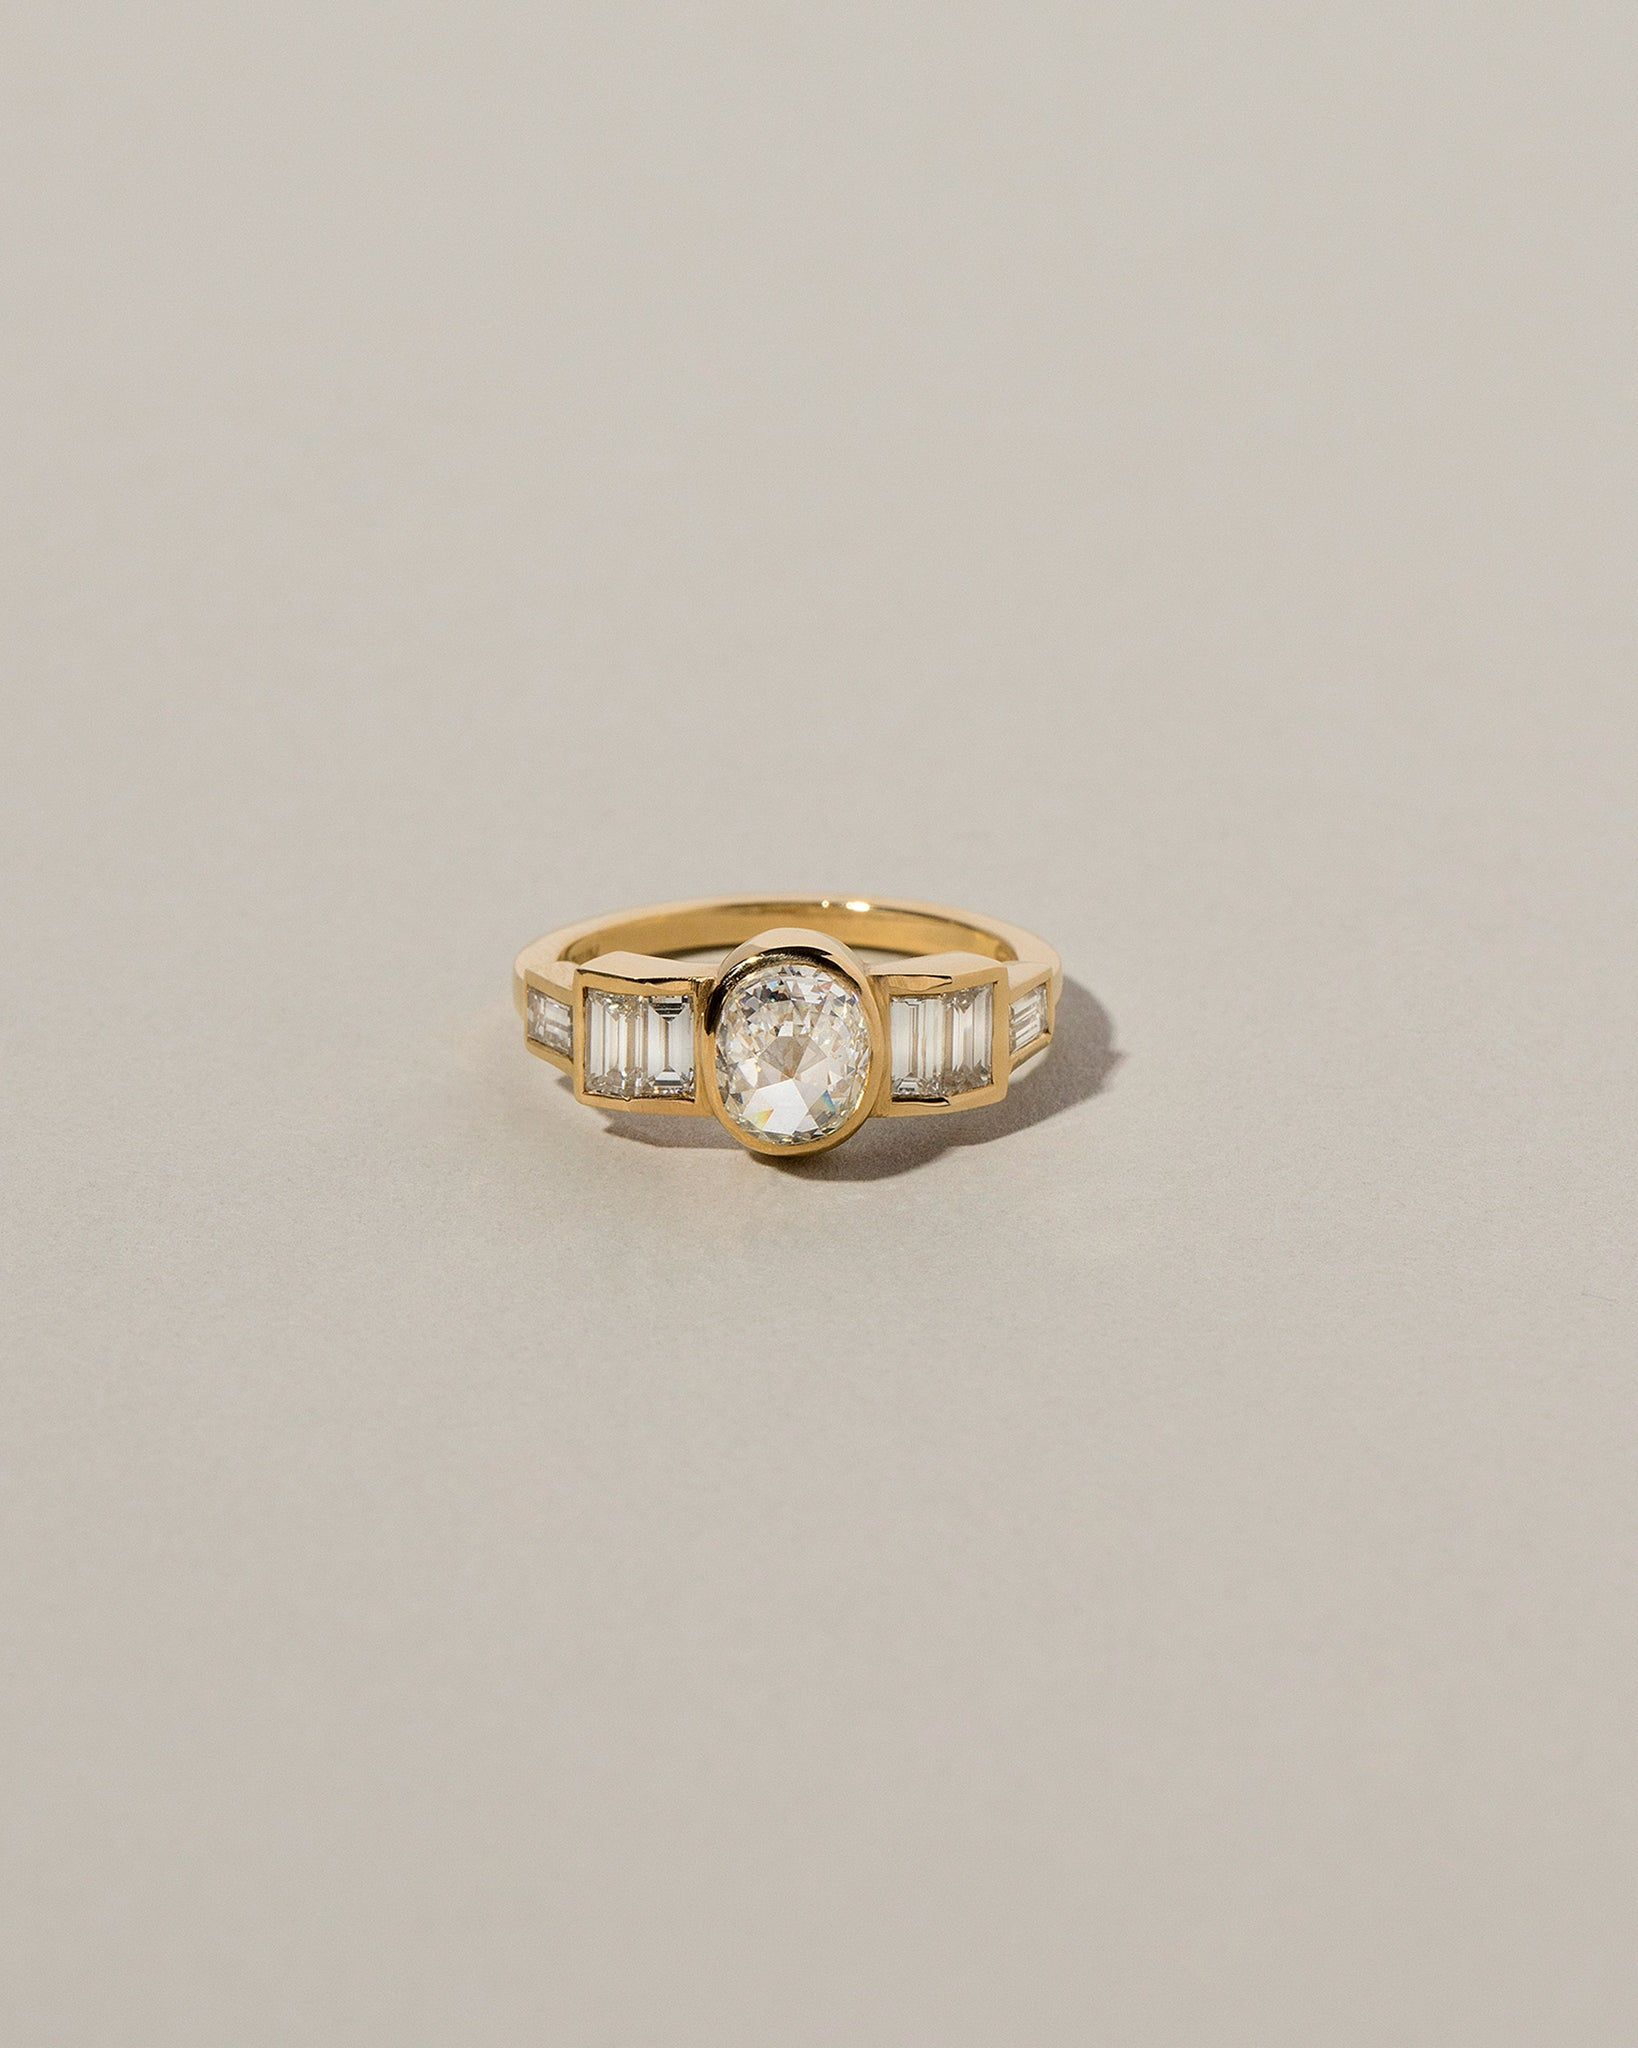 Front view of Modified Brilliant Diamond Ring